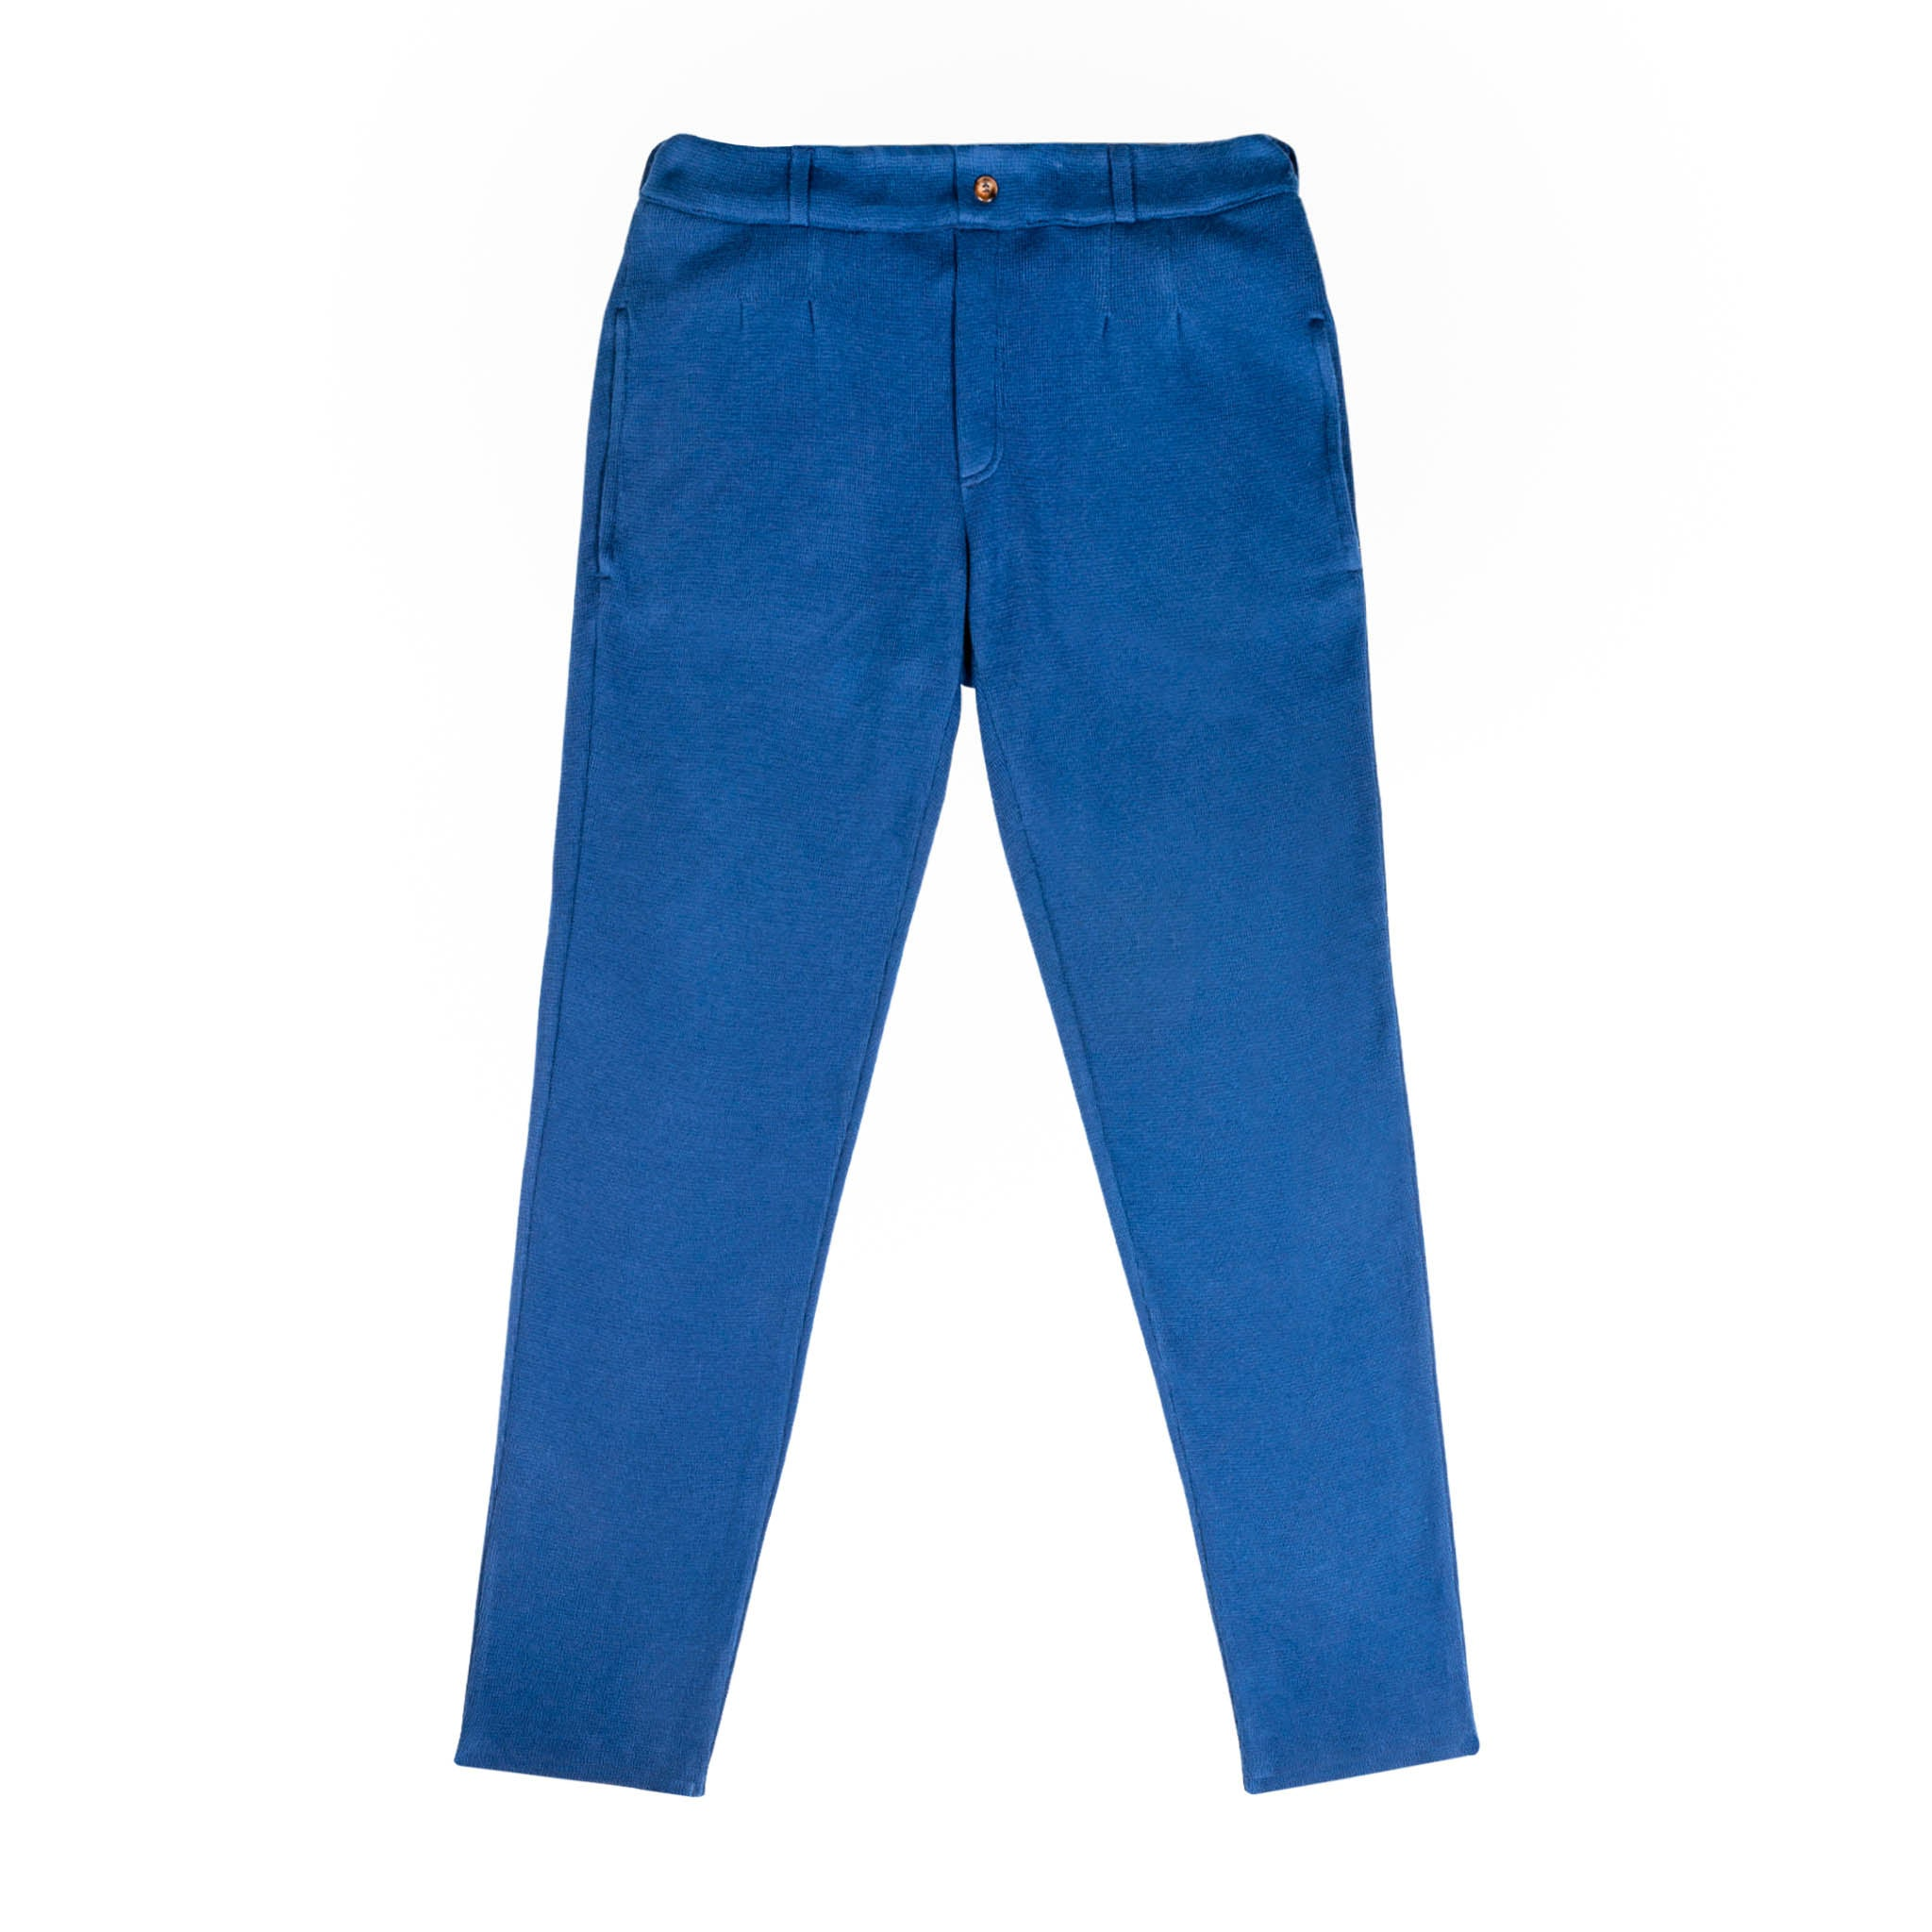 Arno chino made in France oeko tex